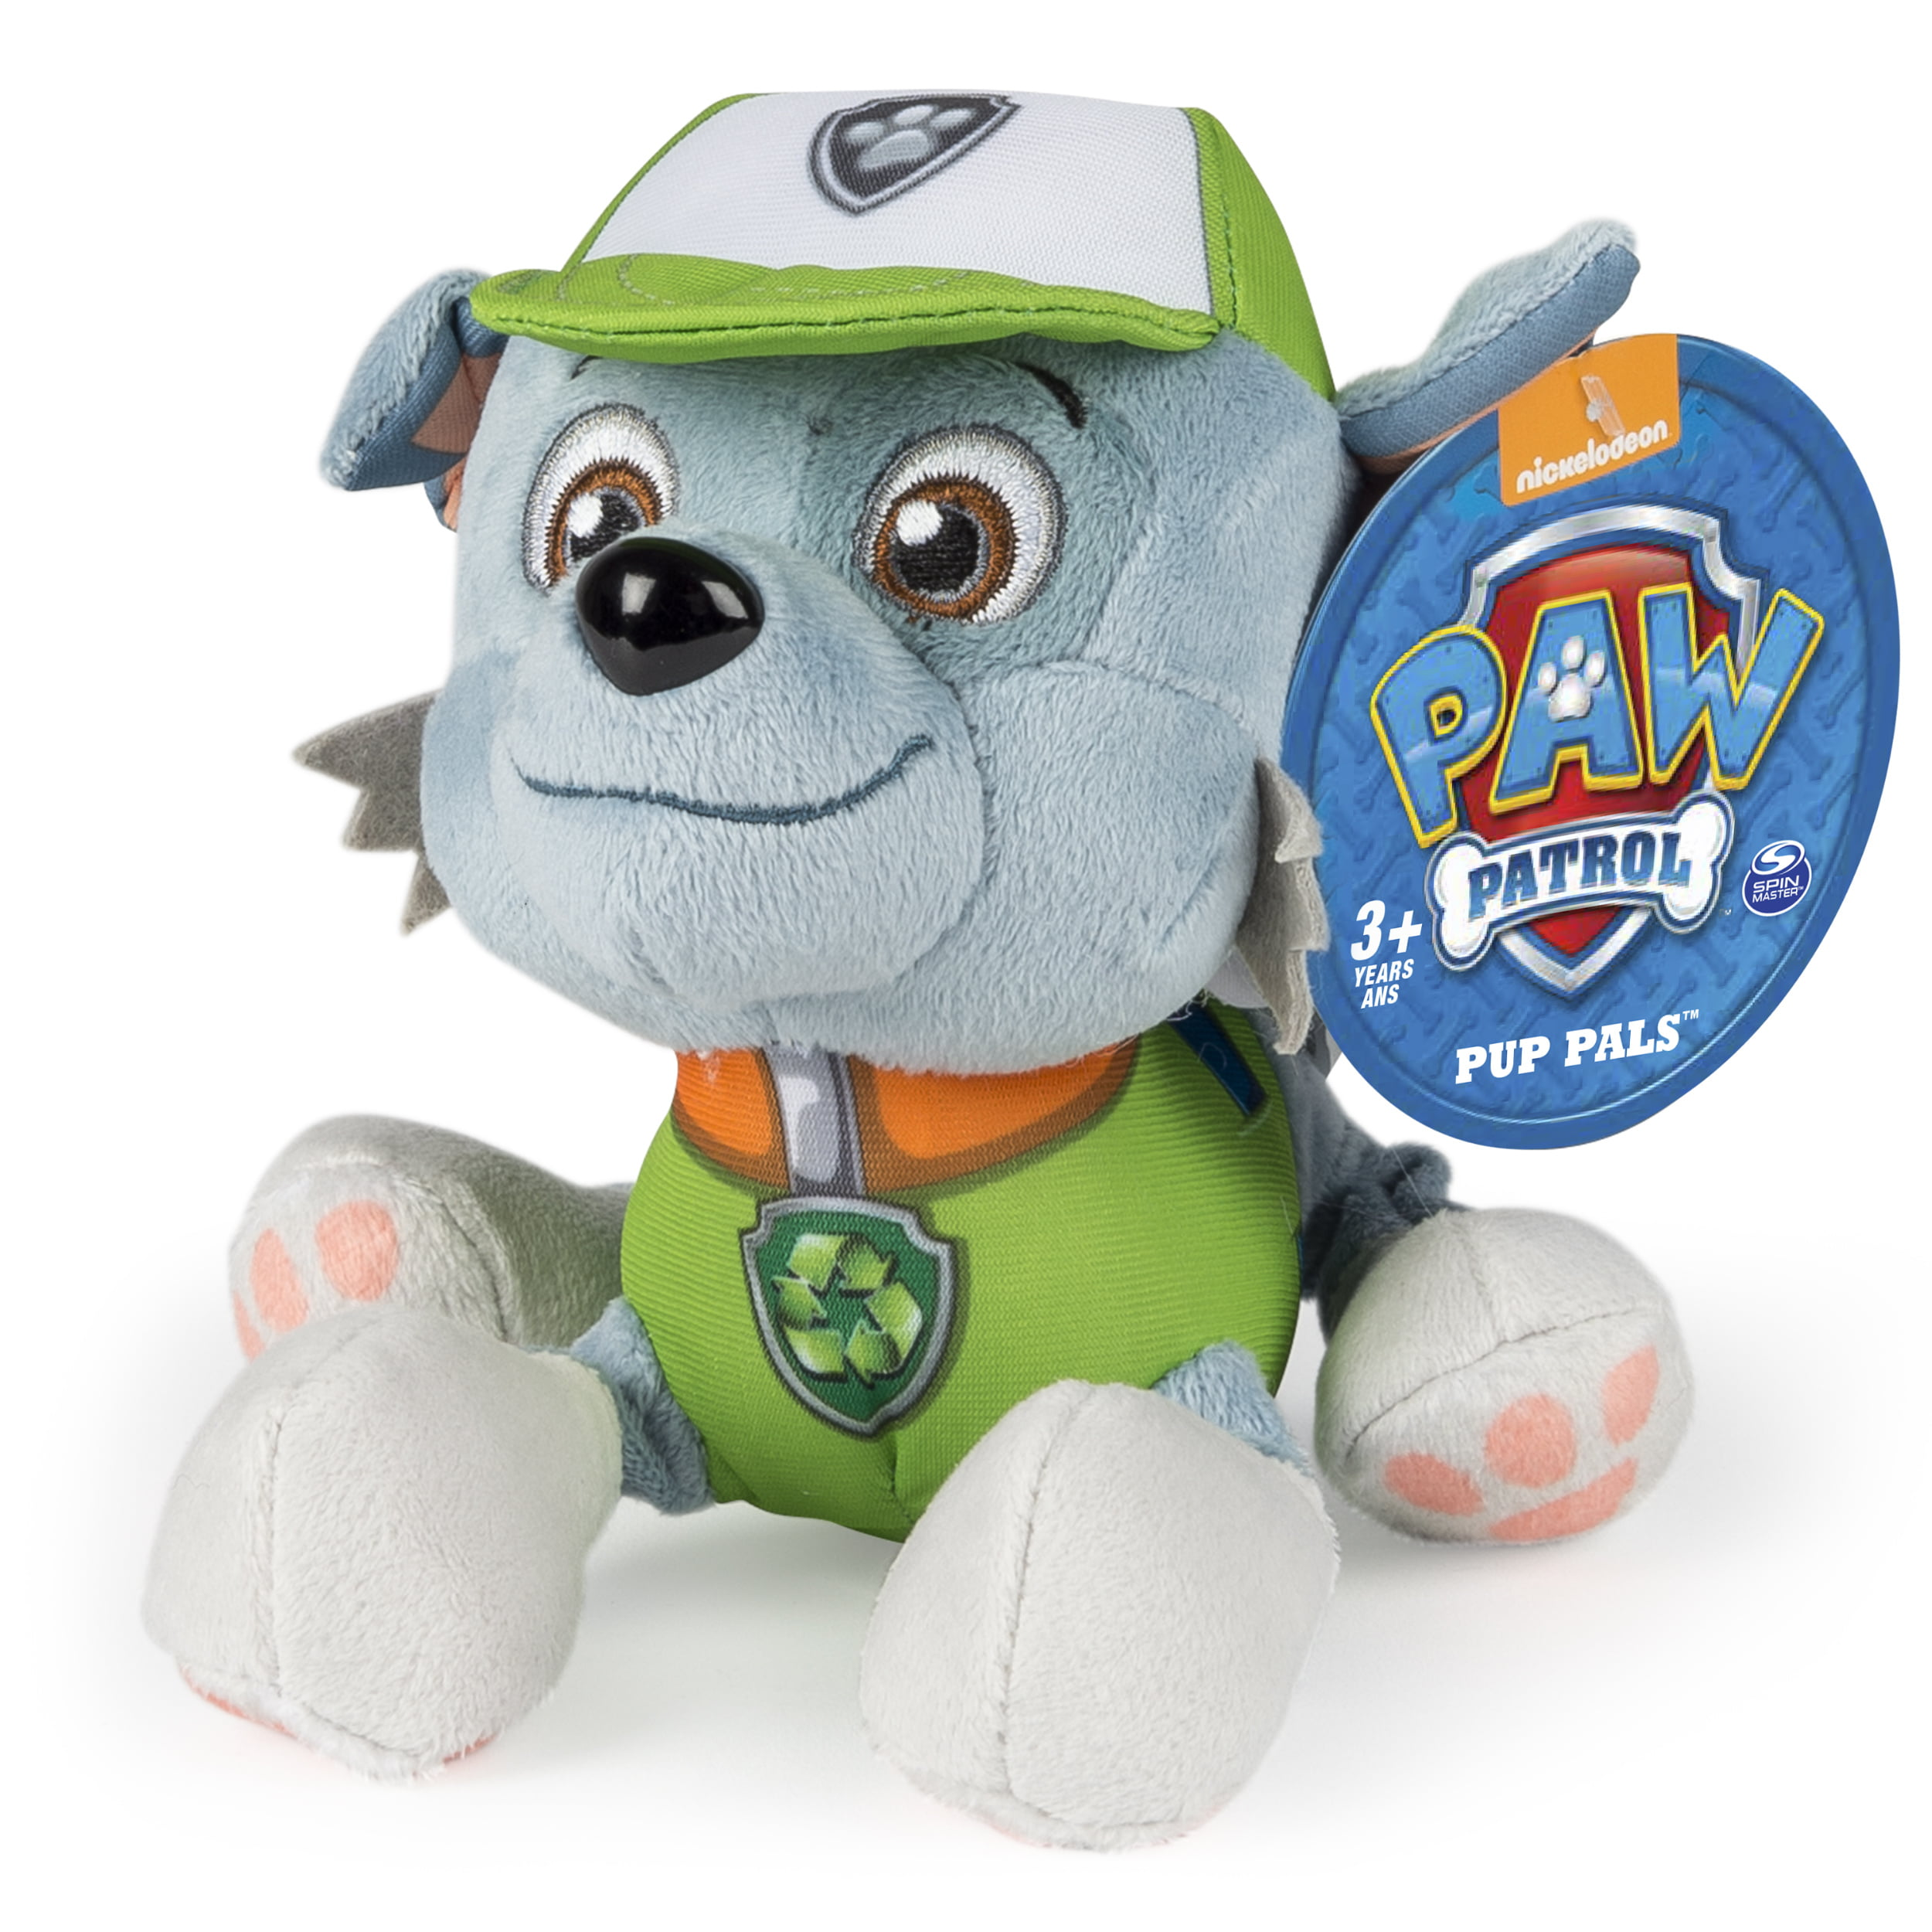 Paw Patrol Plush Pup Pals, Rocky by Spin Master Ltd